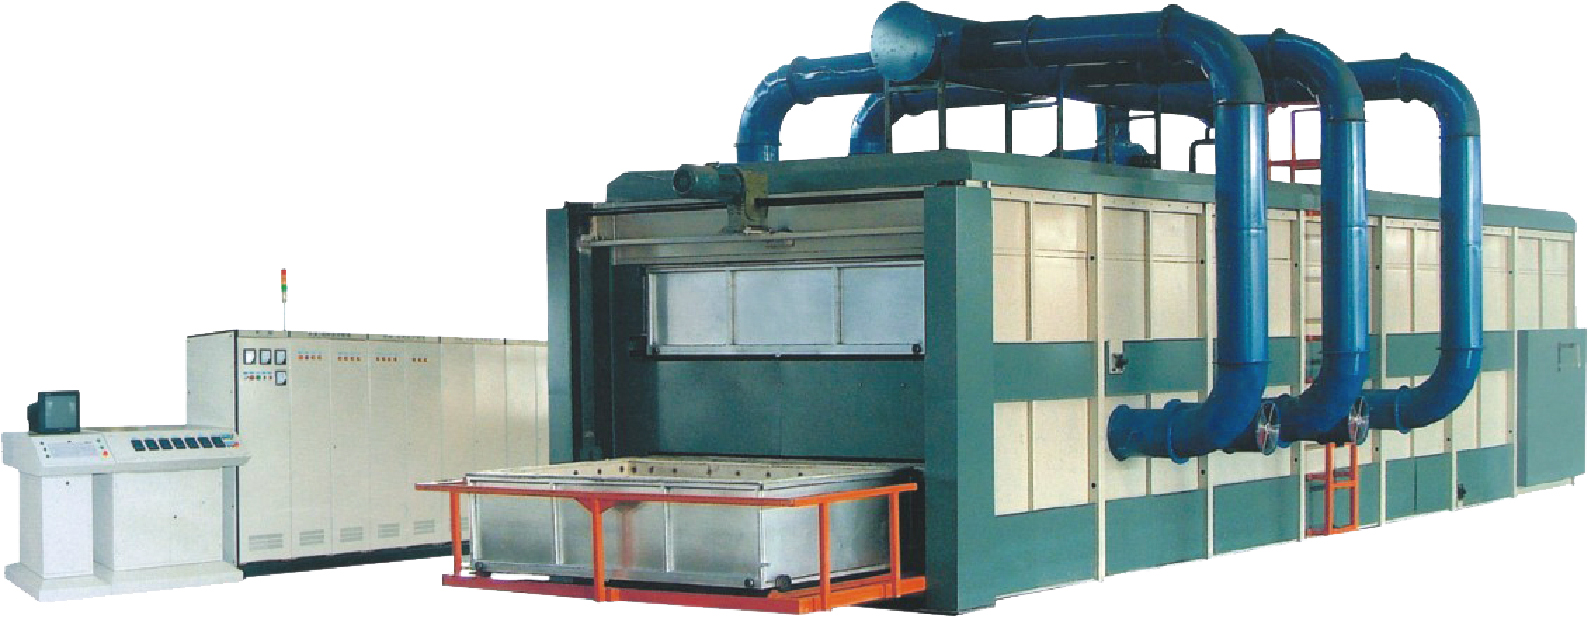 RB28A continuous thermal bending furnace